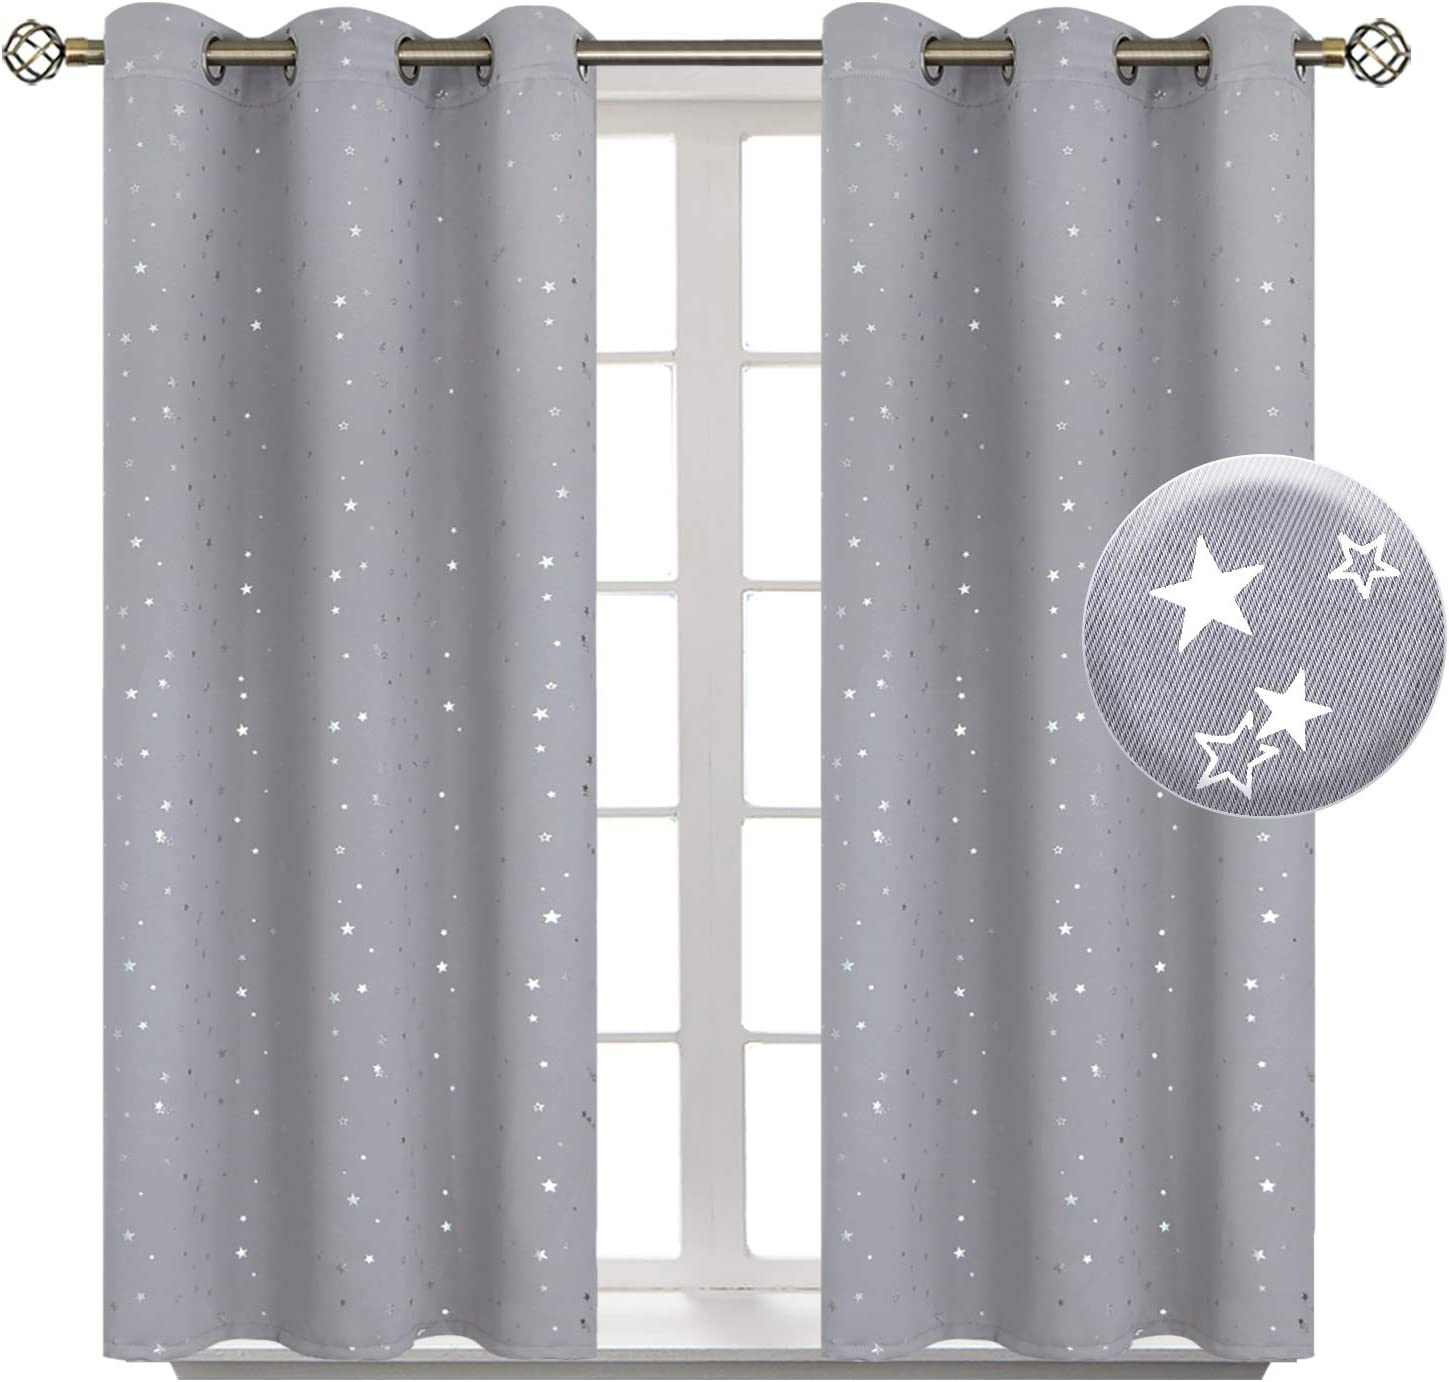 BGment Light Grey Star Blackout Curtains for Kid's Bedroom - Grommet Thermal Insulated Room Darkening Printed Curtains for Living Room, Set of 2 Panels (38 x 54 Inch, Light Grey)